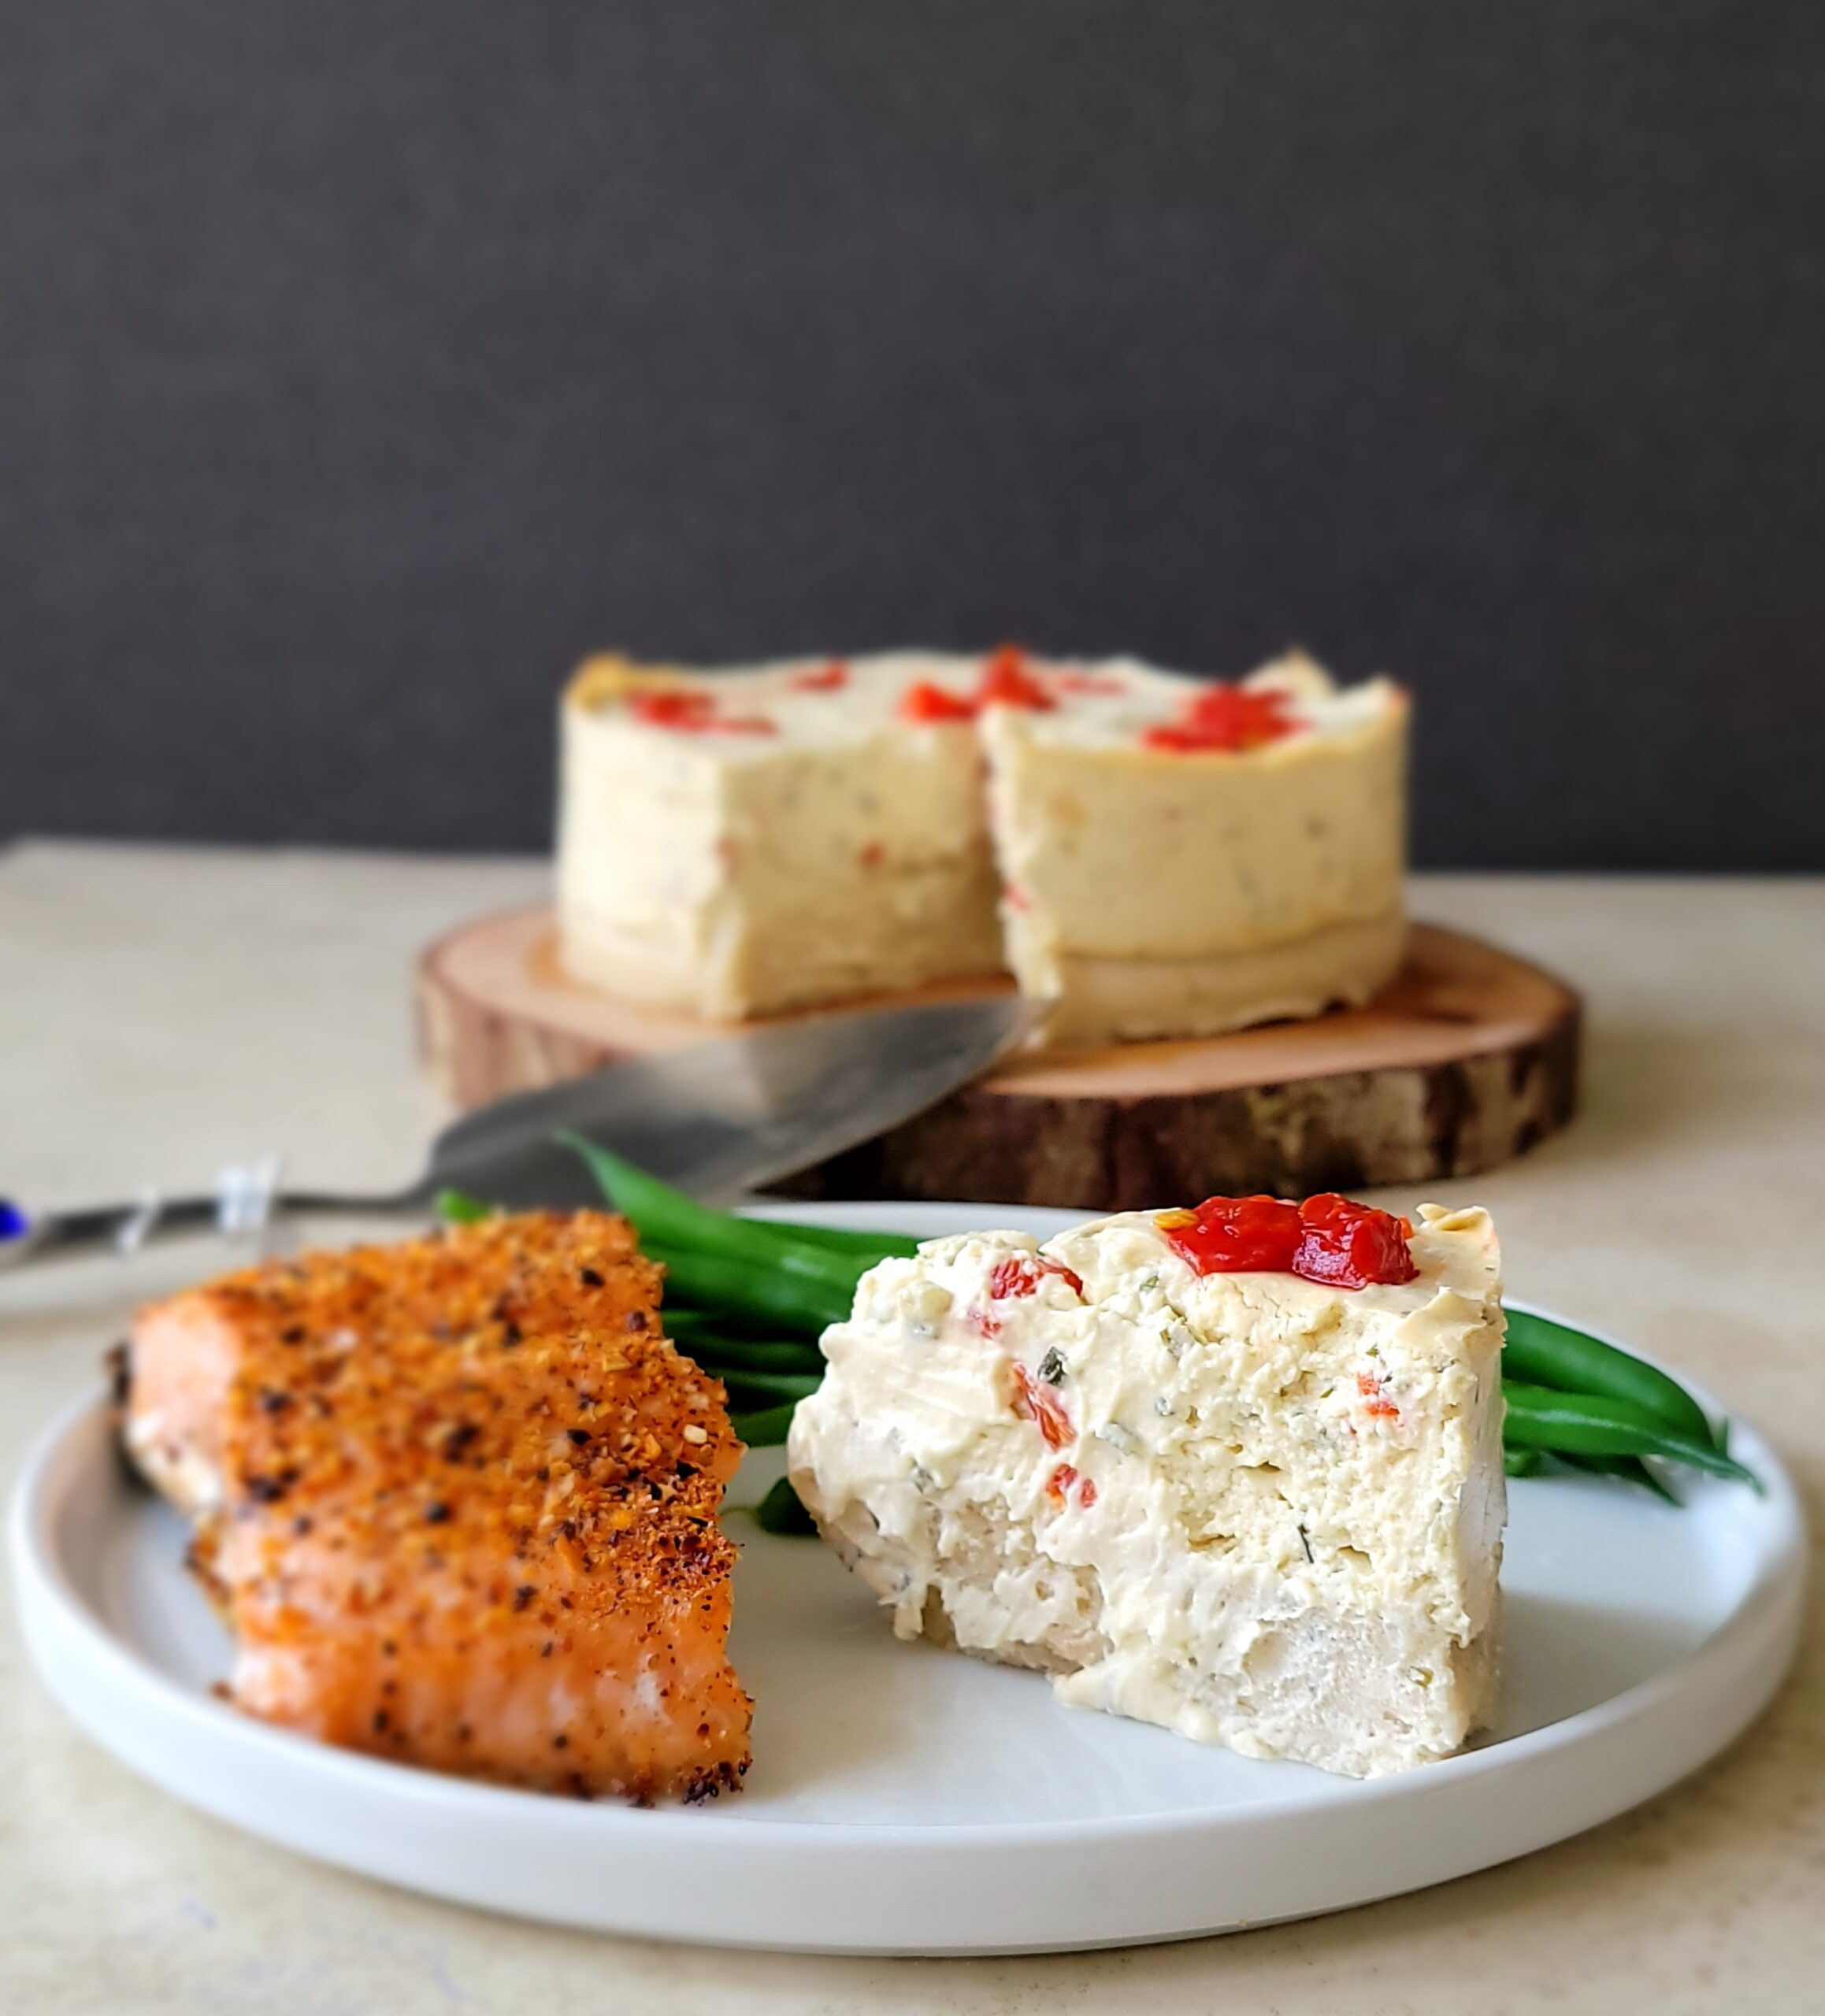 This is what a slice of the Savory Chive Cheesecake looks like